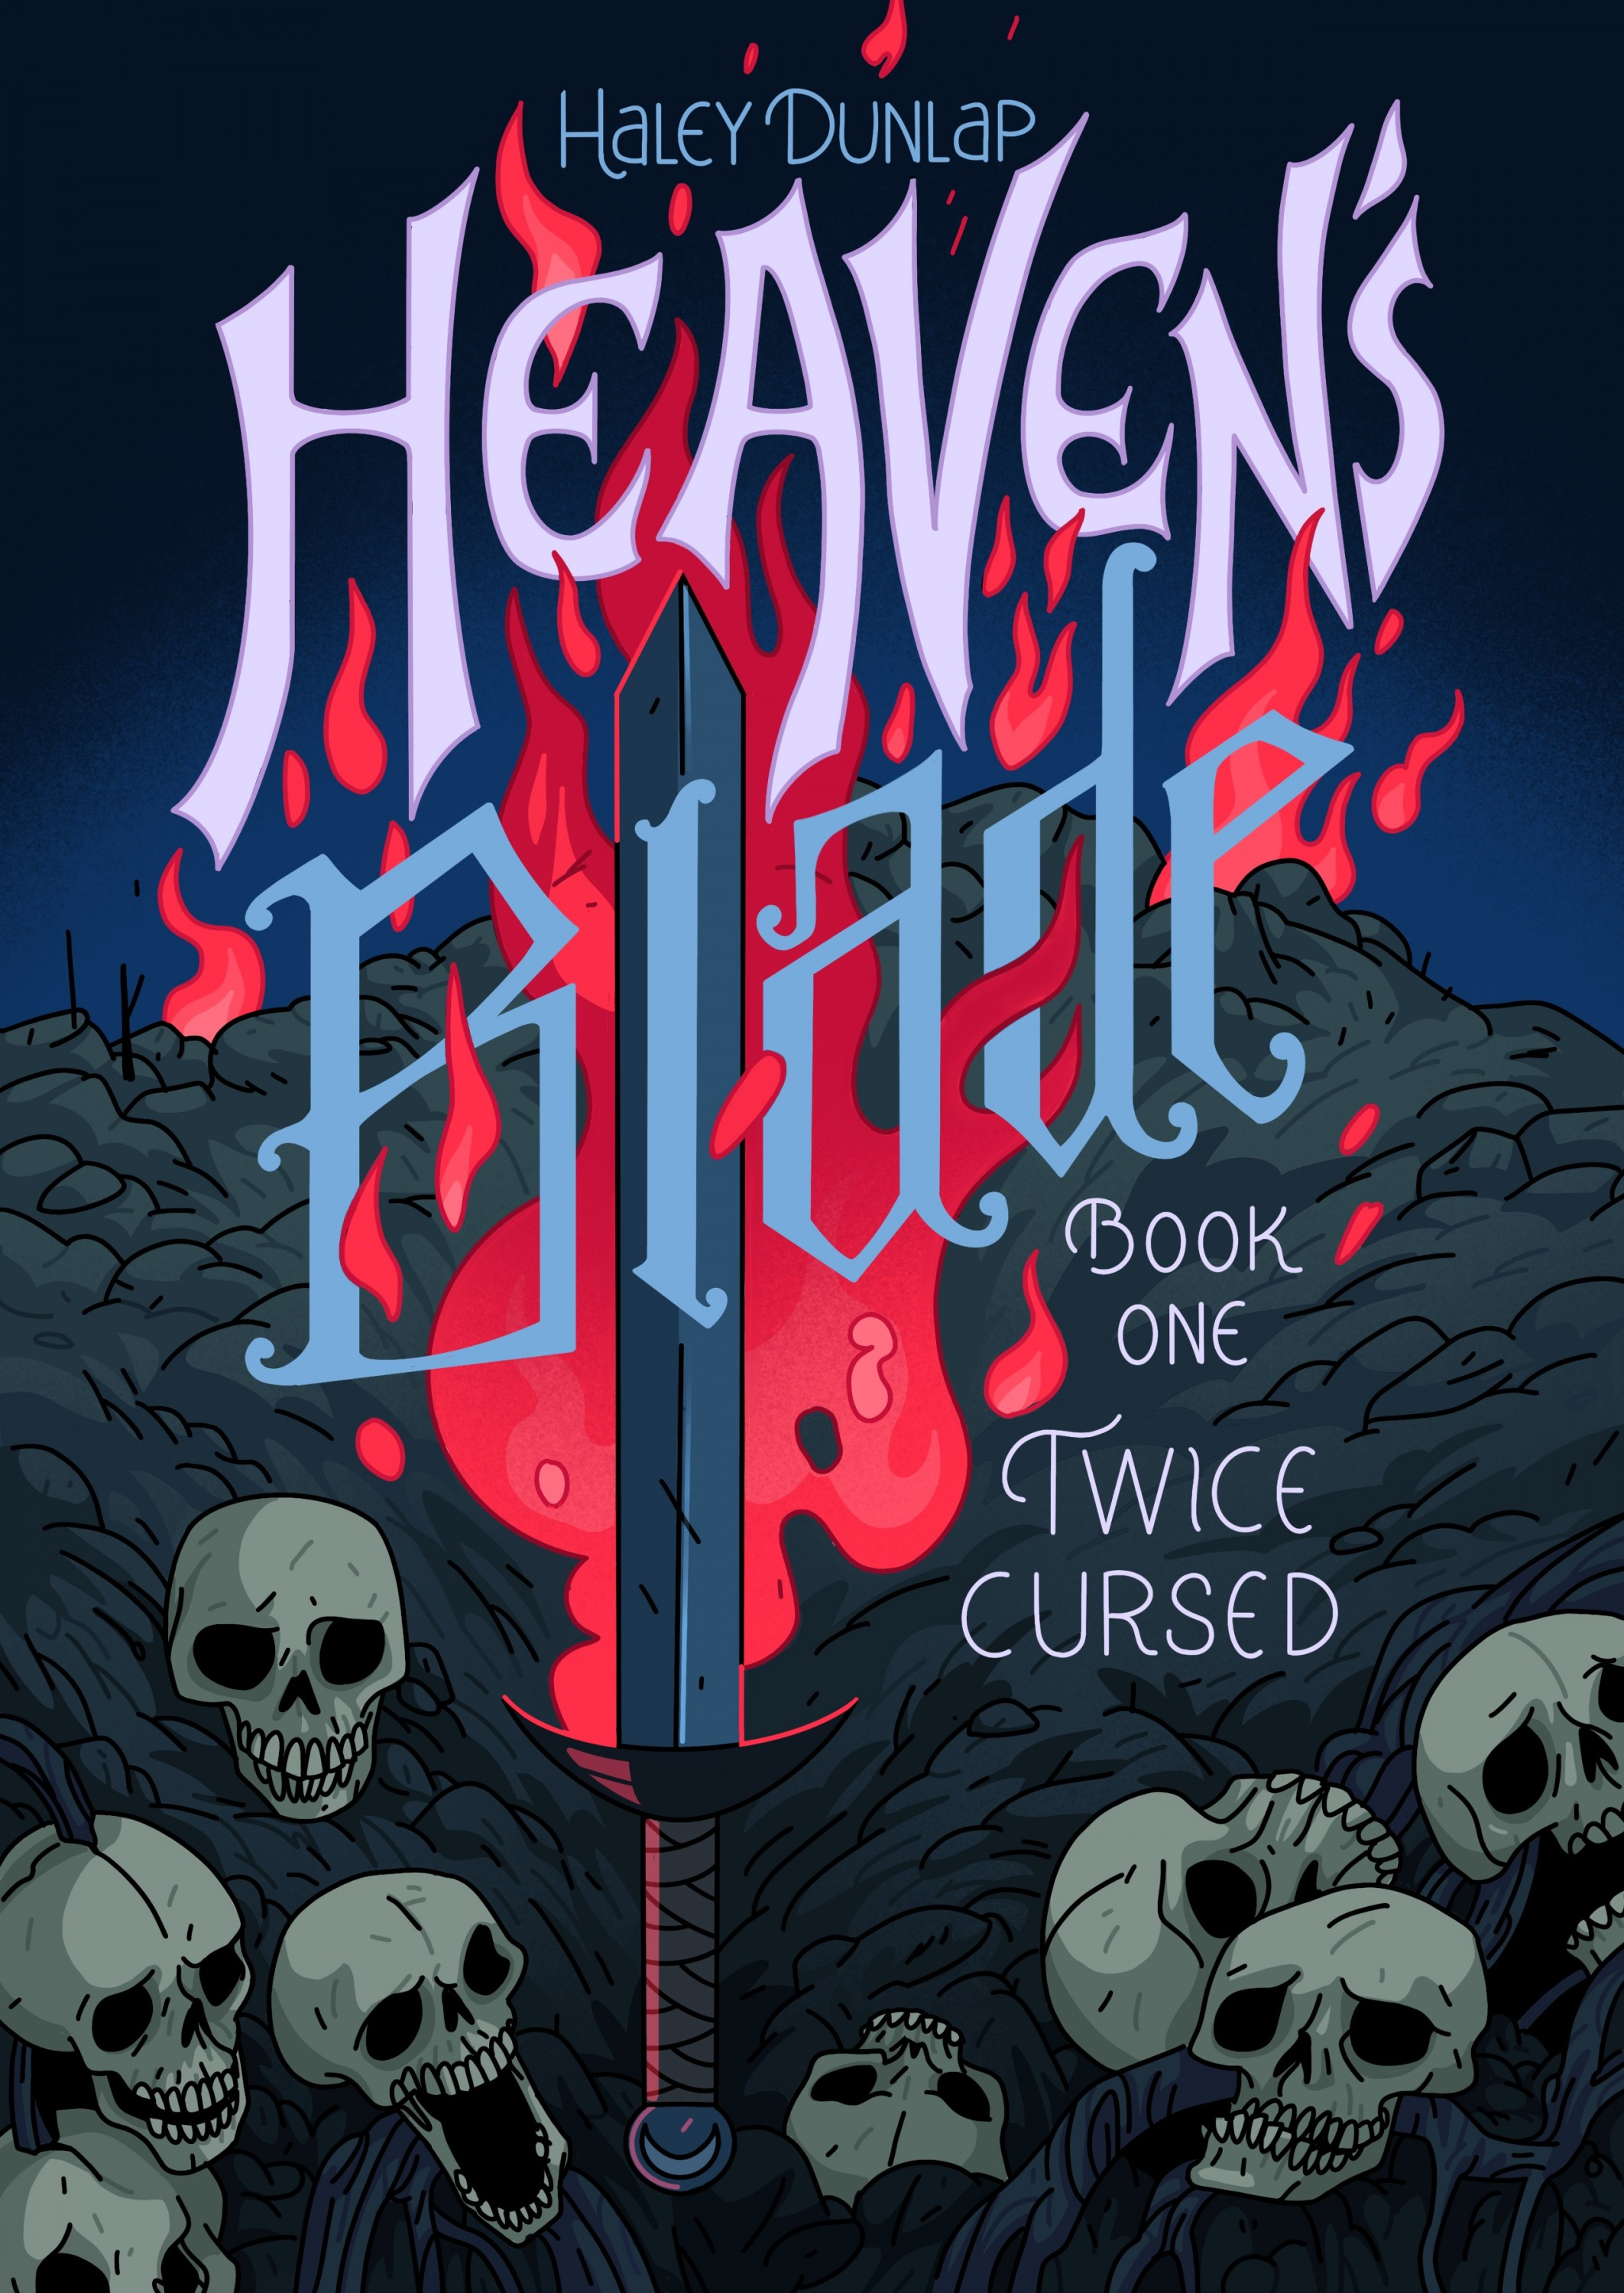 """""""Heaven's Blade"""" Written in a gothic style hand lettering in a pale pink and baby blue. Behind this text is a broad sword on fire with a pink/ orange flame. The background is a pile of blueish green  stones and gray green skulls at the bottom of the image"""